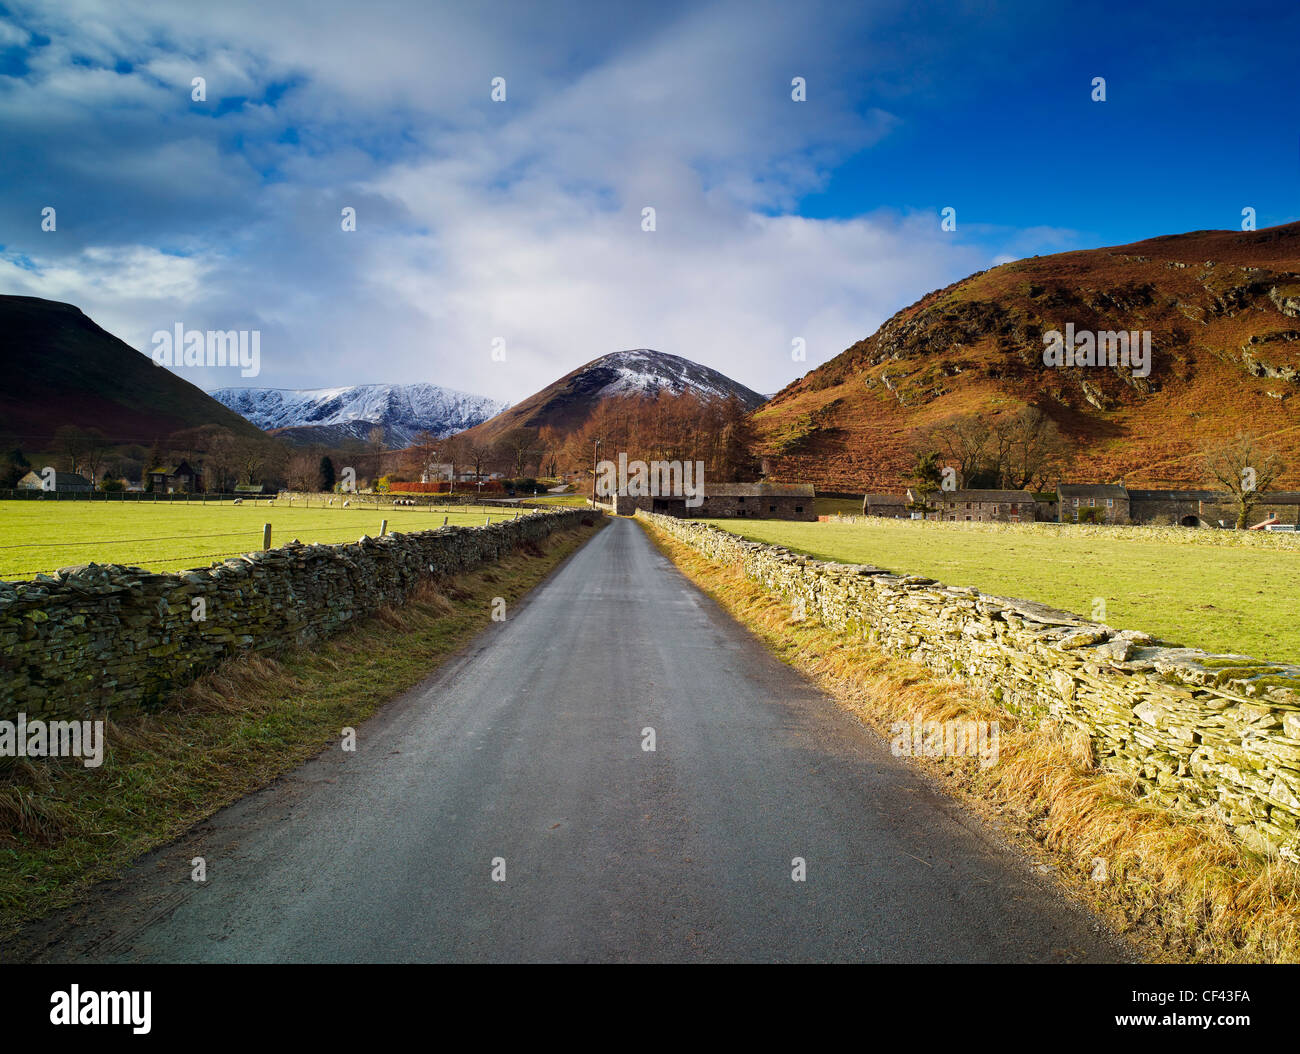 Looking along a quiet lane towards the remote Cumbrian village of Mungrisdale in the Lake District. Stock Photo